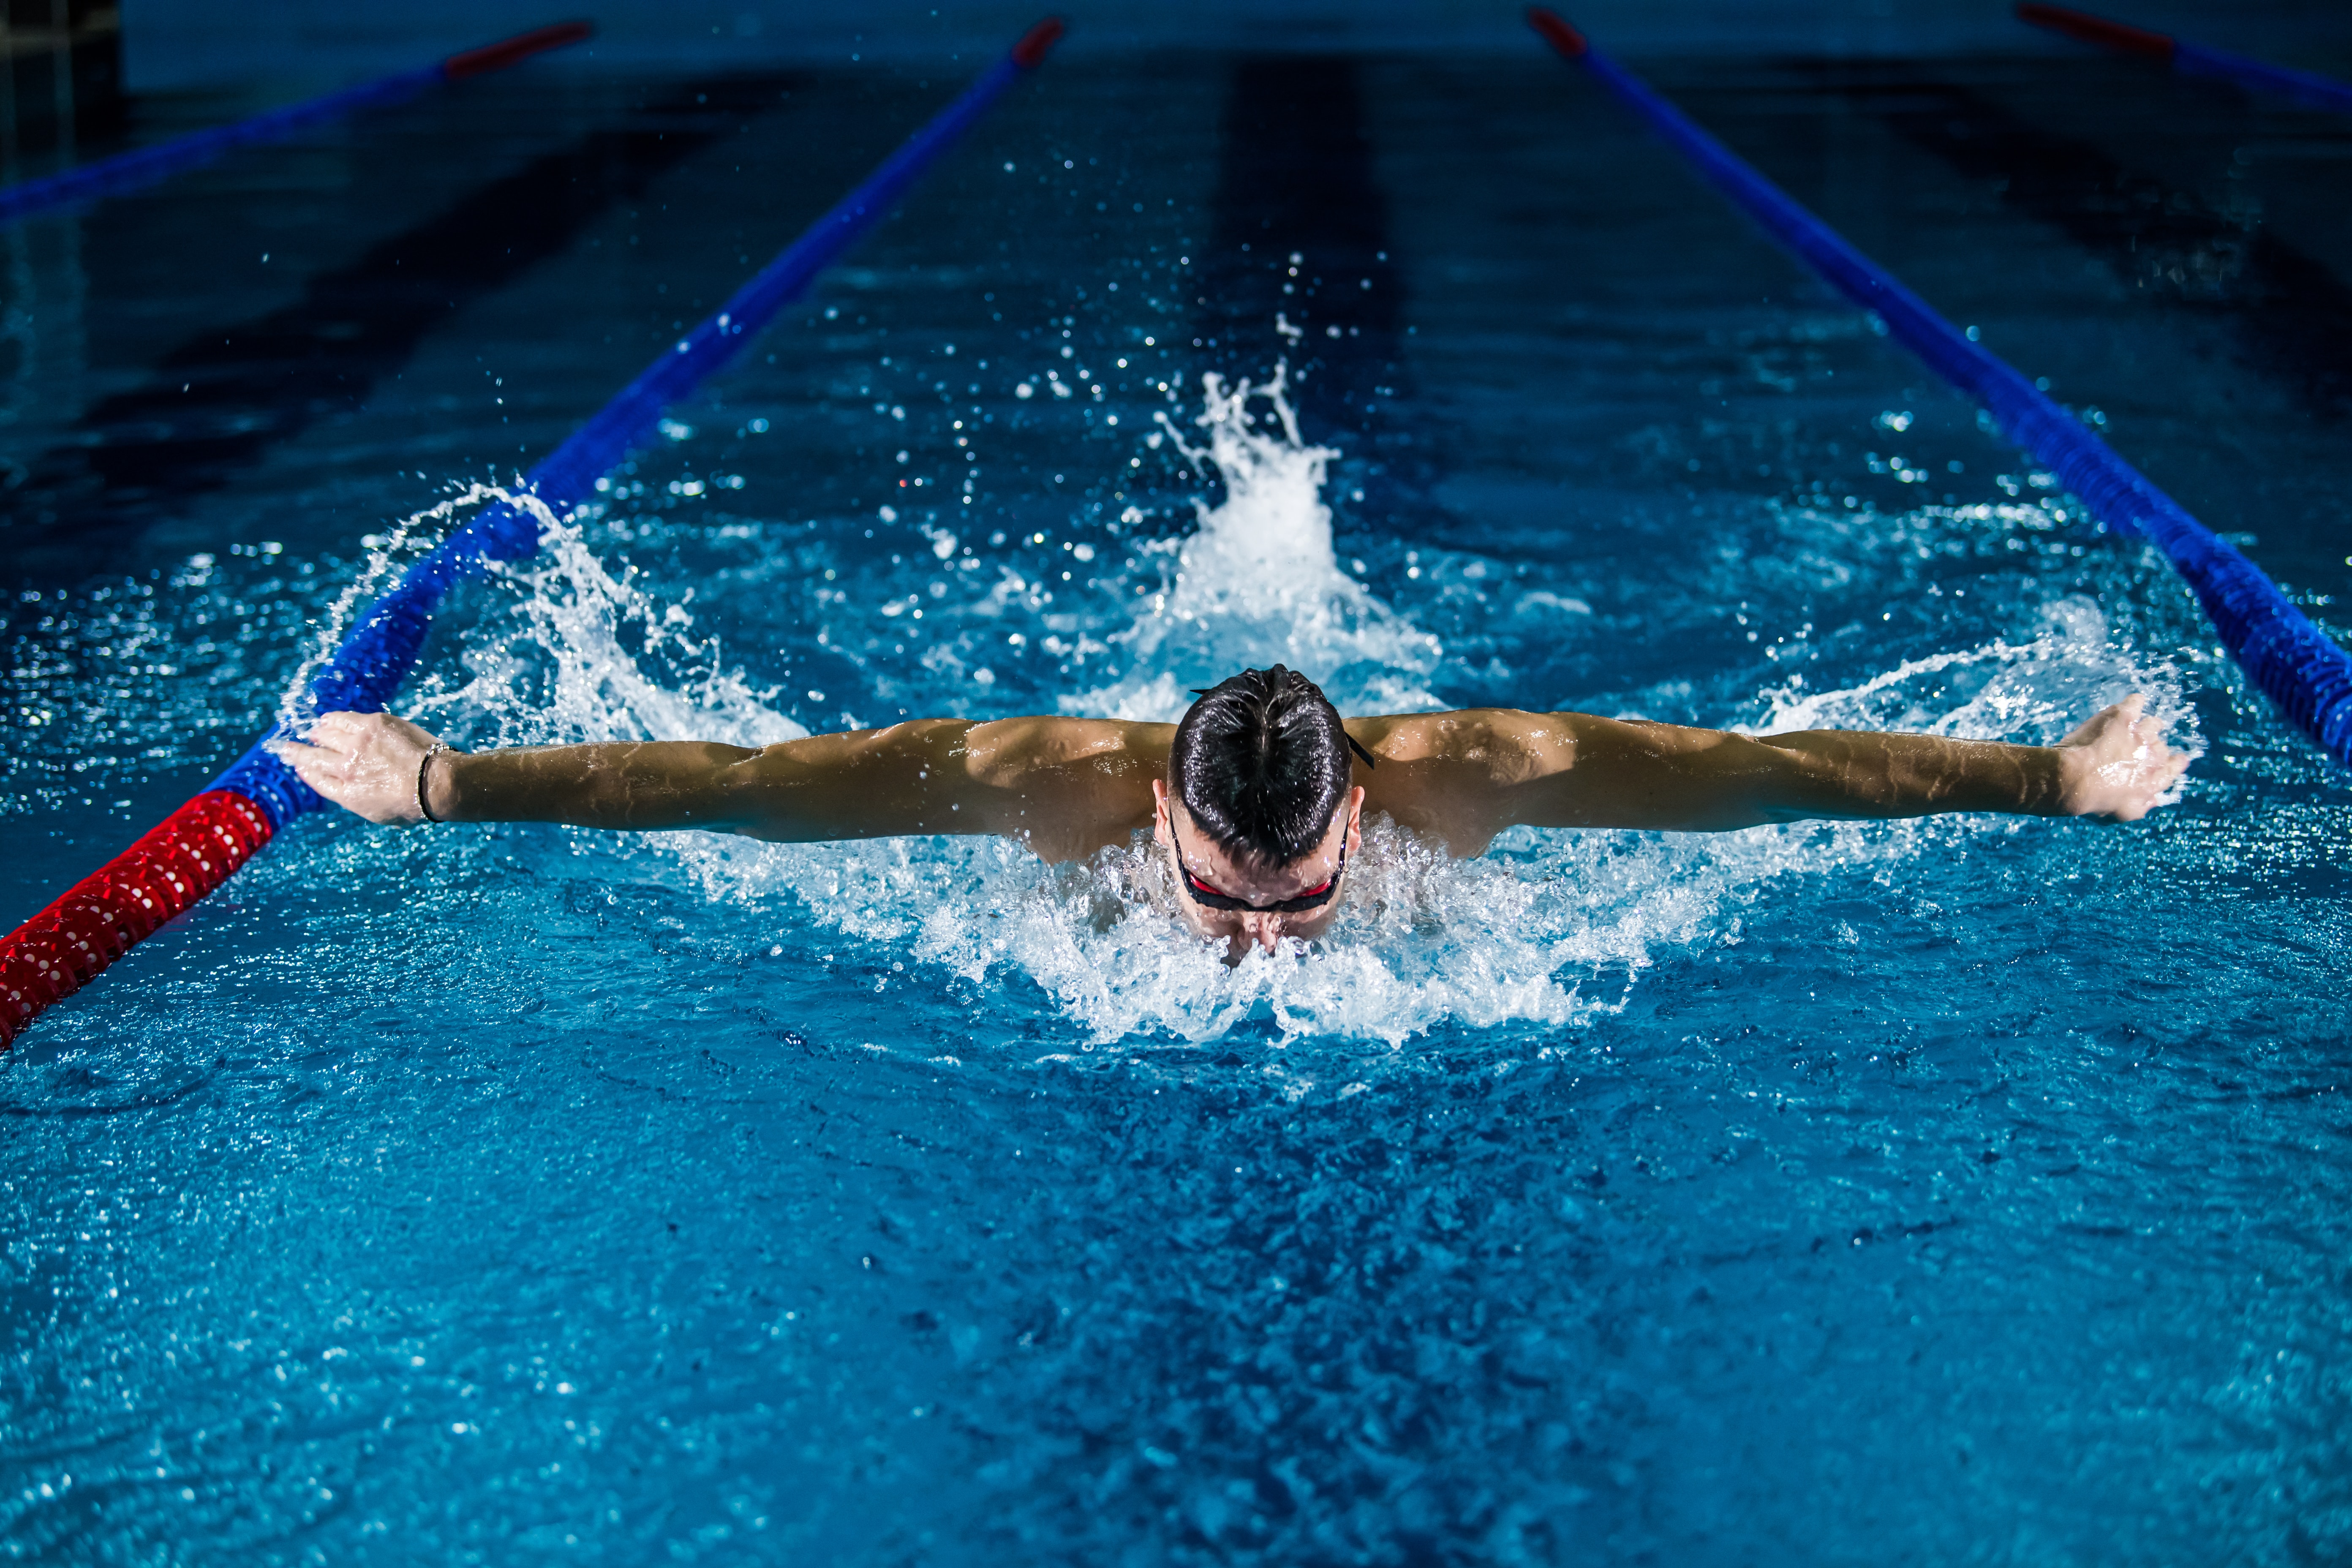 Swimming pictures galleries 19